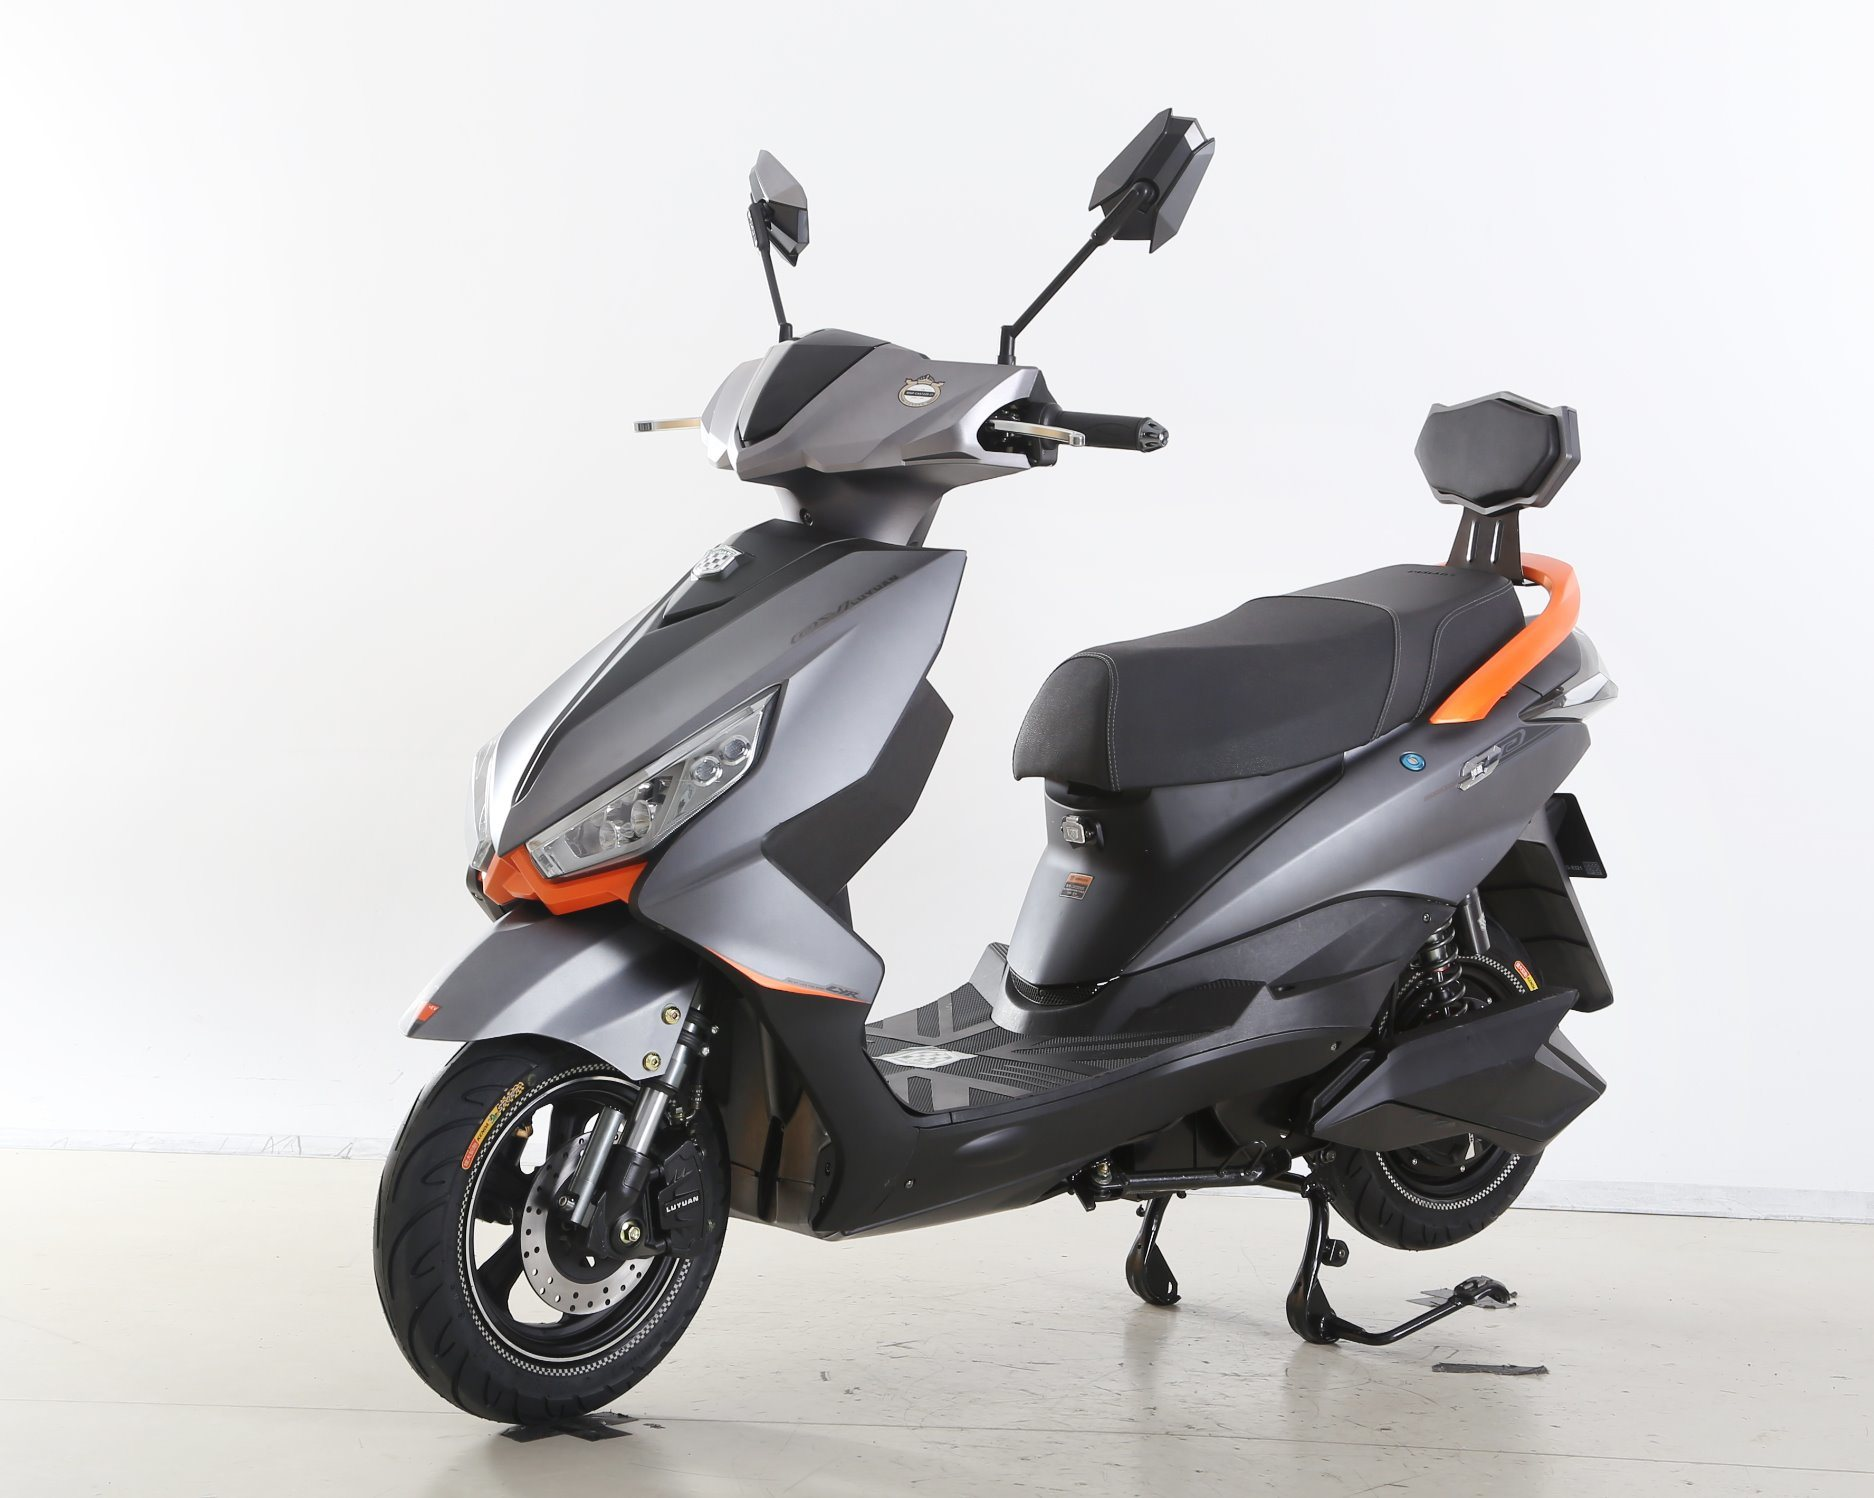 800W Sporty Electric Motorcycle Mnp